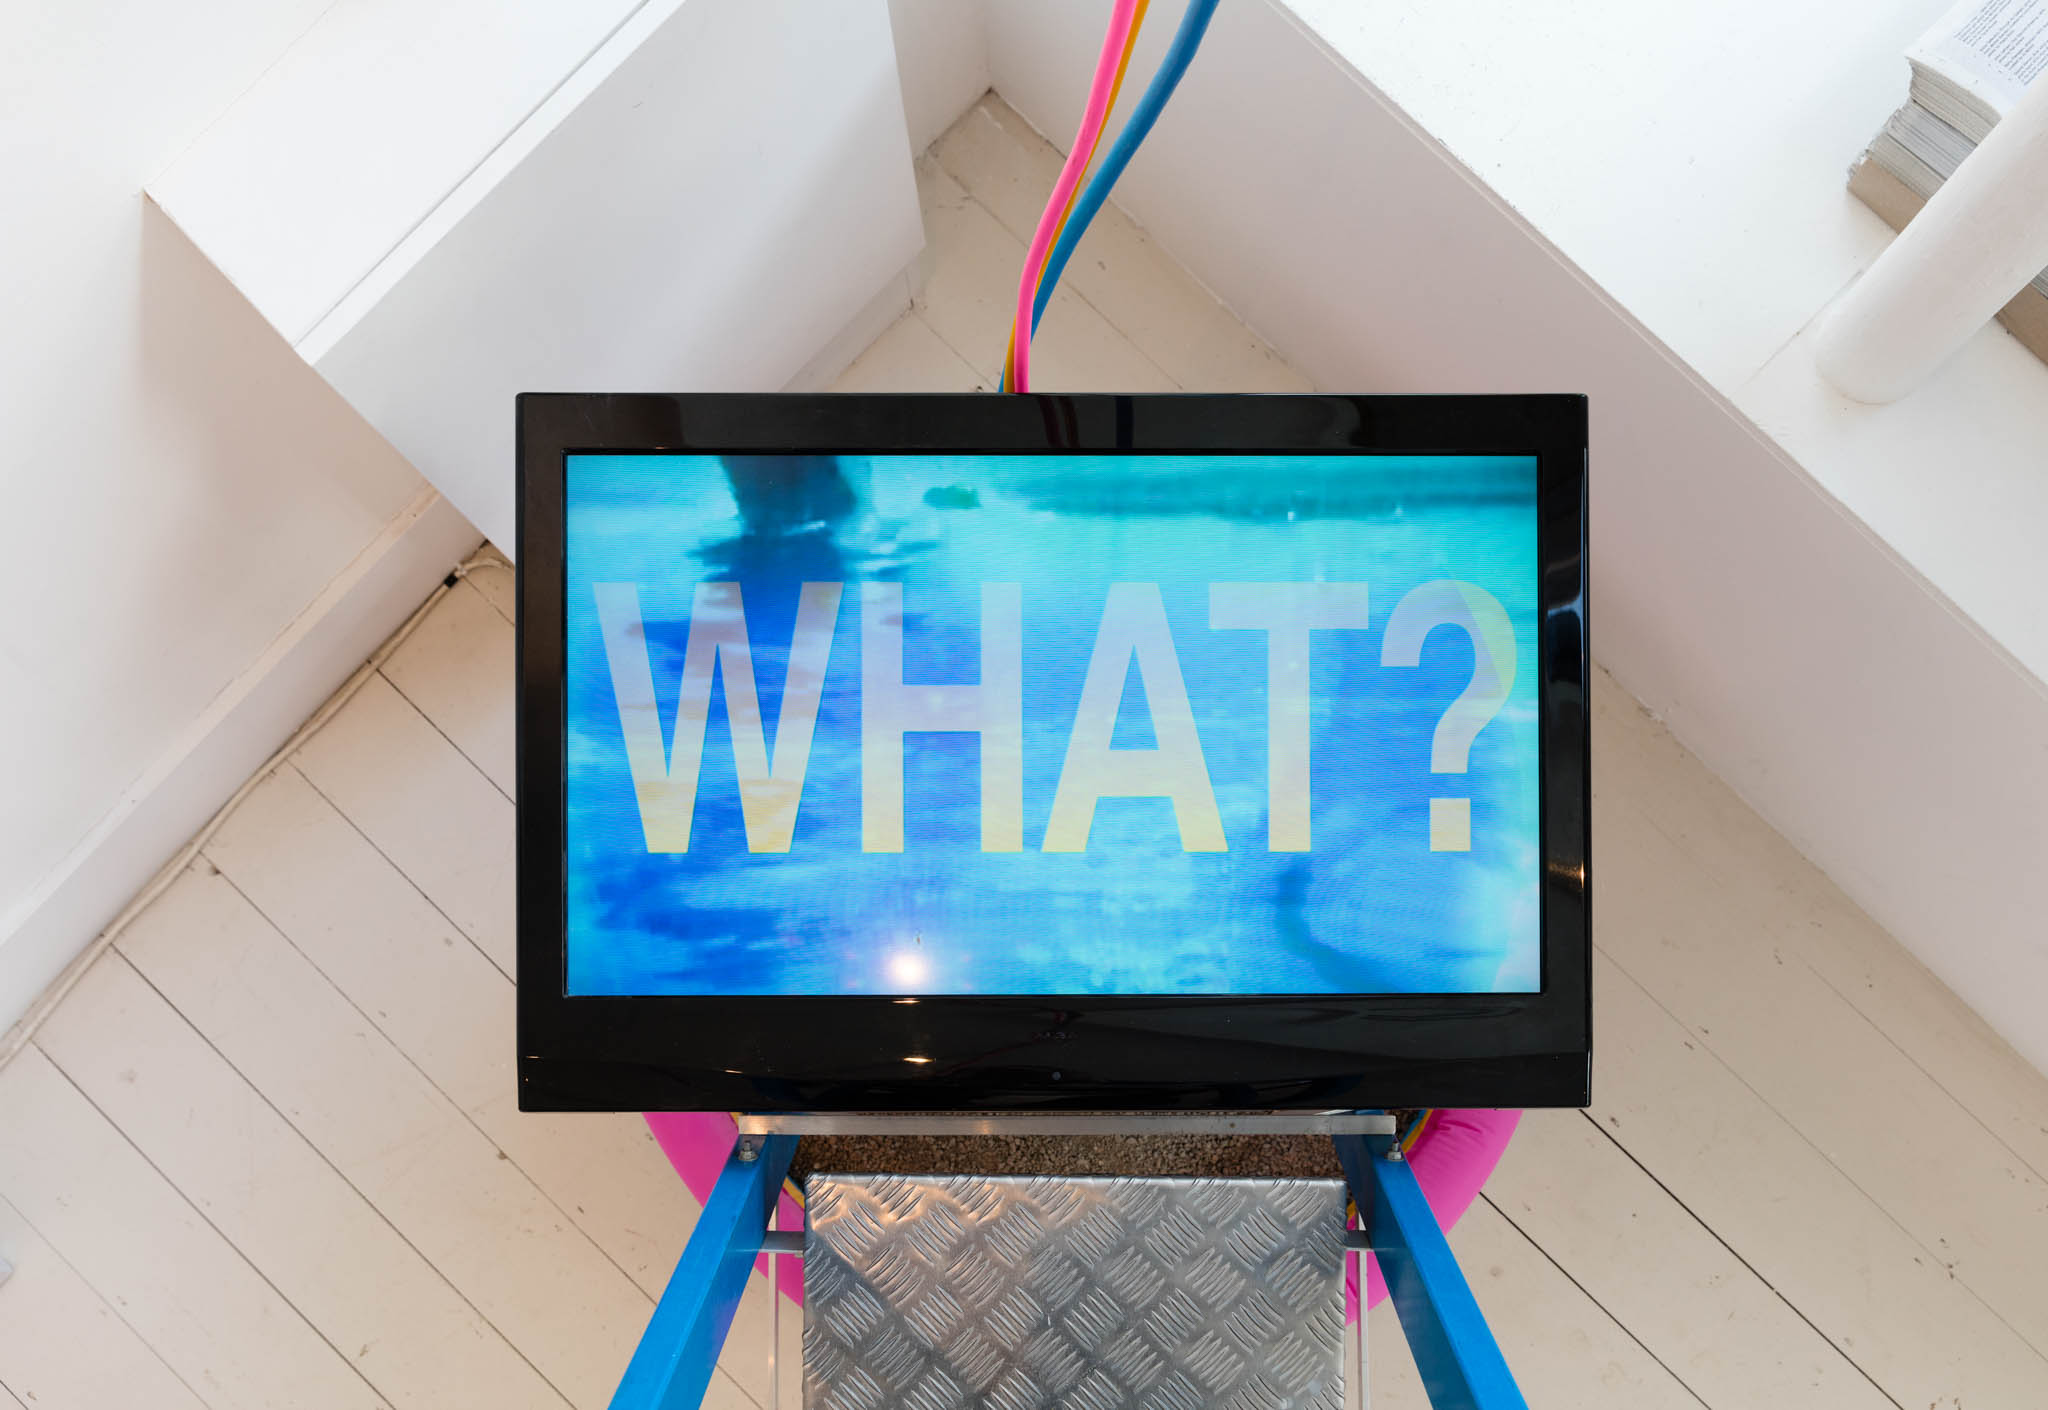 Heather Phillipson, Zero-Point Garbage Matte, 2012, exhibited in 2012 as part of the group show 'Eye Music for Dancing' and again in 2016 as part of 'The Shift: 8 Years of Flat Time House' (Flat Time House Closing Party 0)